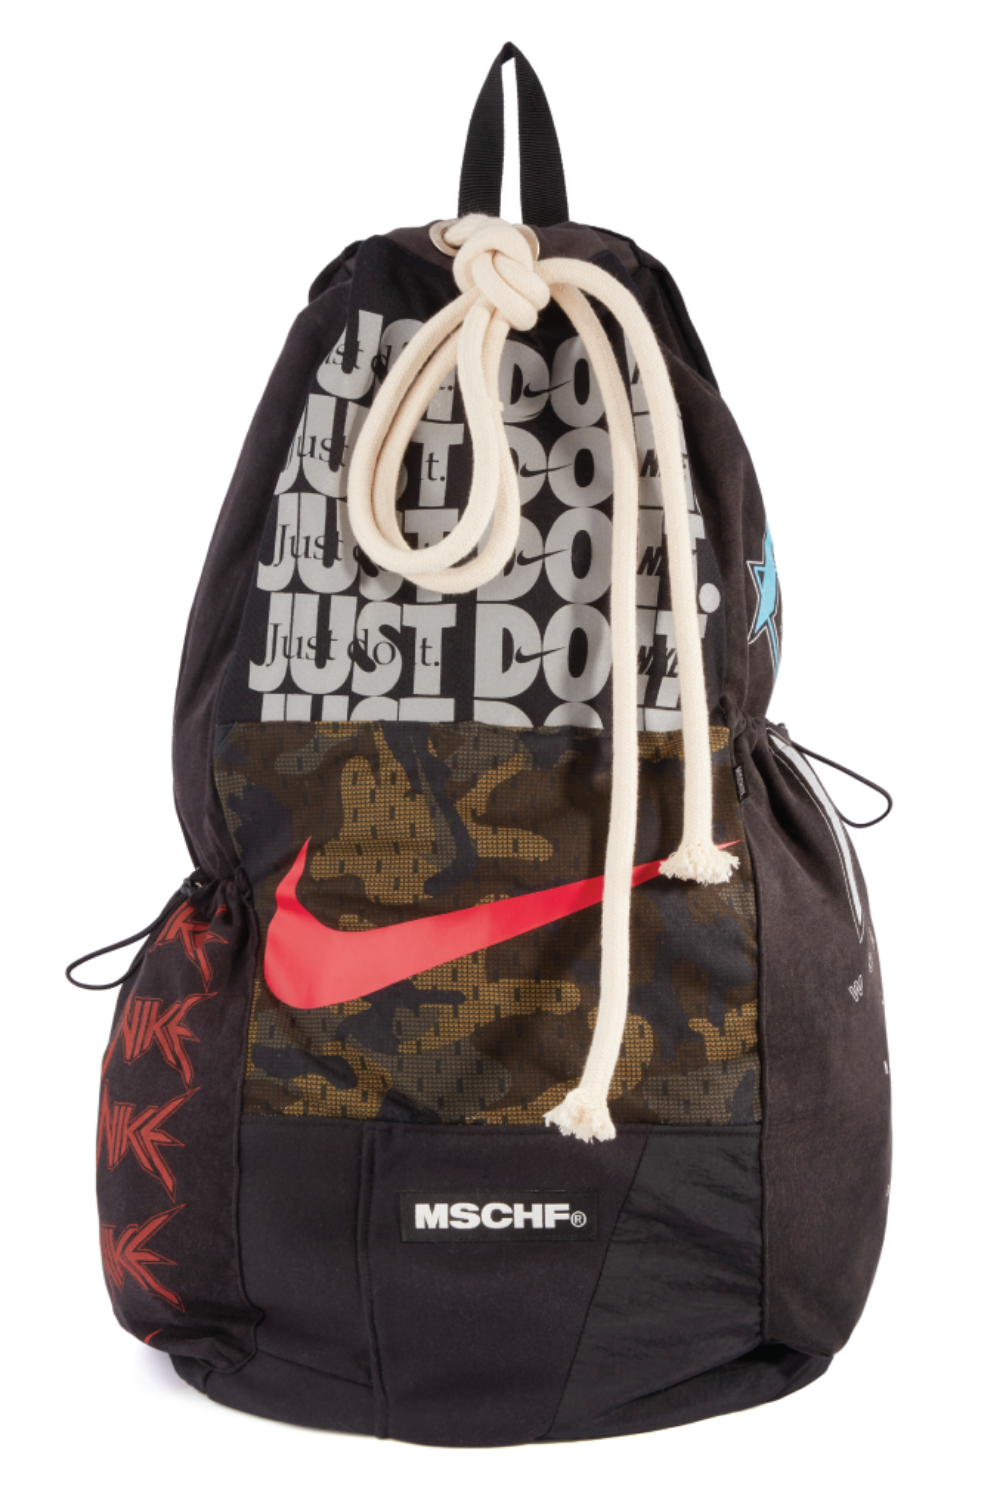 NIKE BATTLE FORCE SEOUL X MISCHIEF | handmade product catalogue